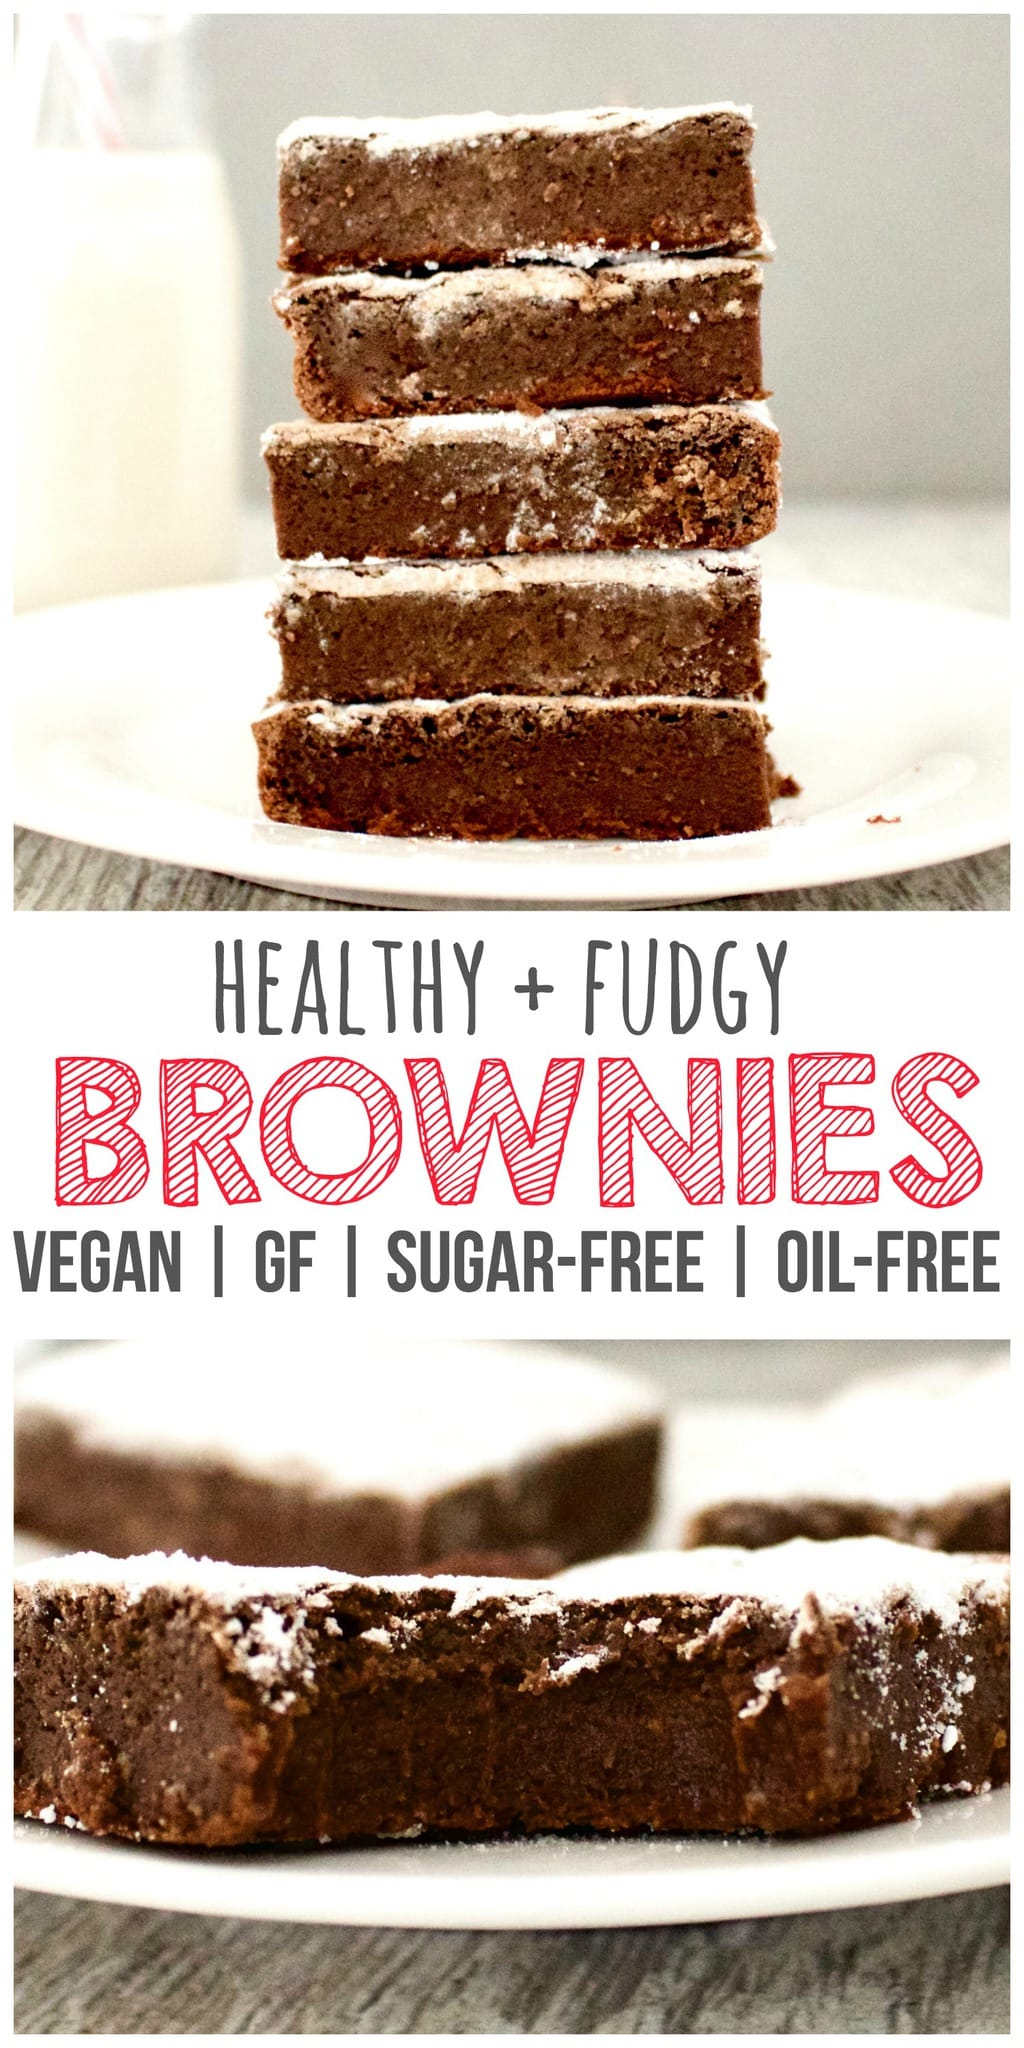 These AMAZING Vegan Fudge Brownies might actually change your life! They are so amazingly delicious but also totally healthy and guilt-free! Gluten-free, dairy-free, oil-free, low-fat, sugar-free, and low-calorie - only 59 calories each!